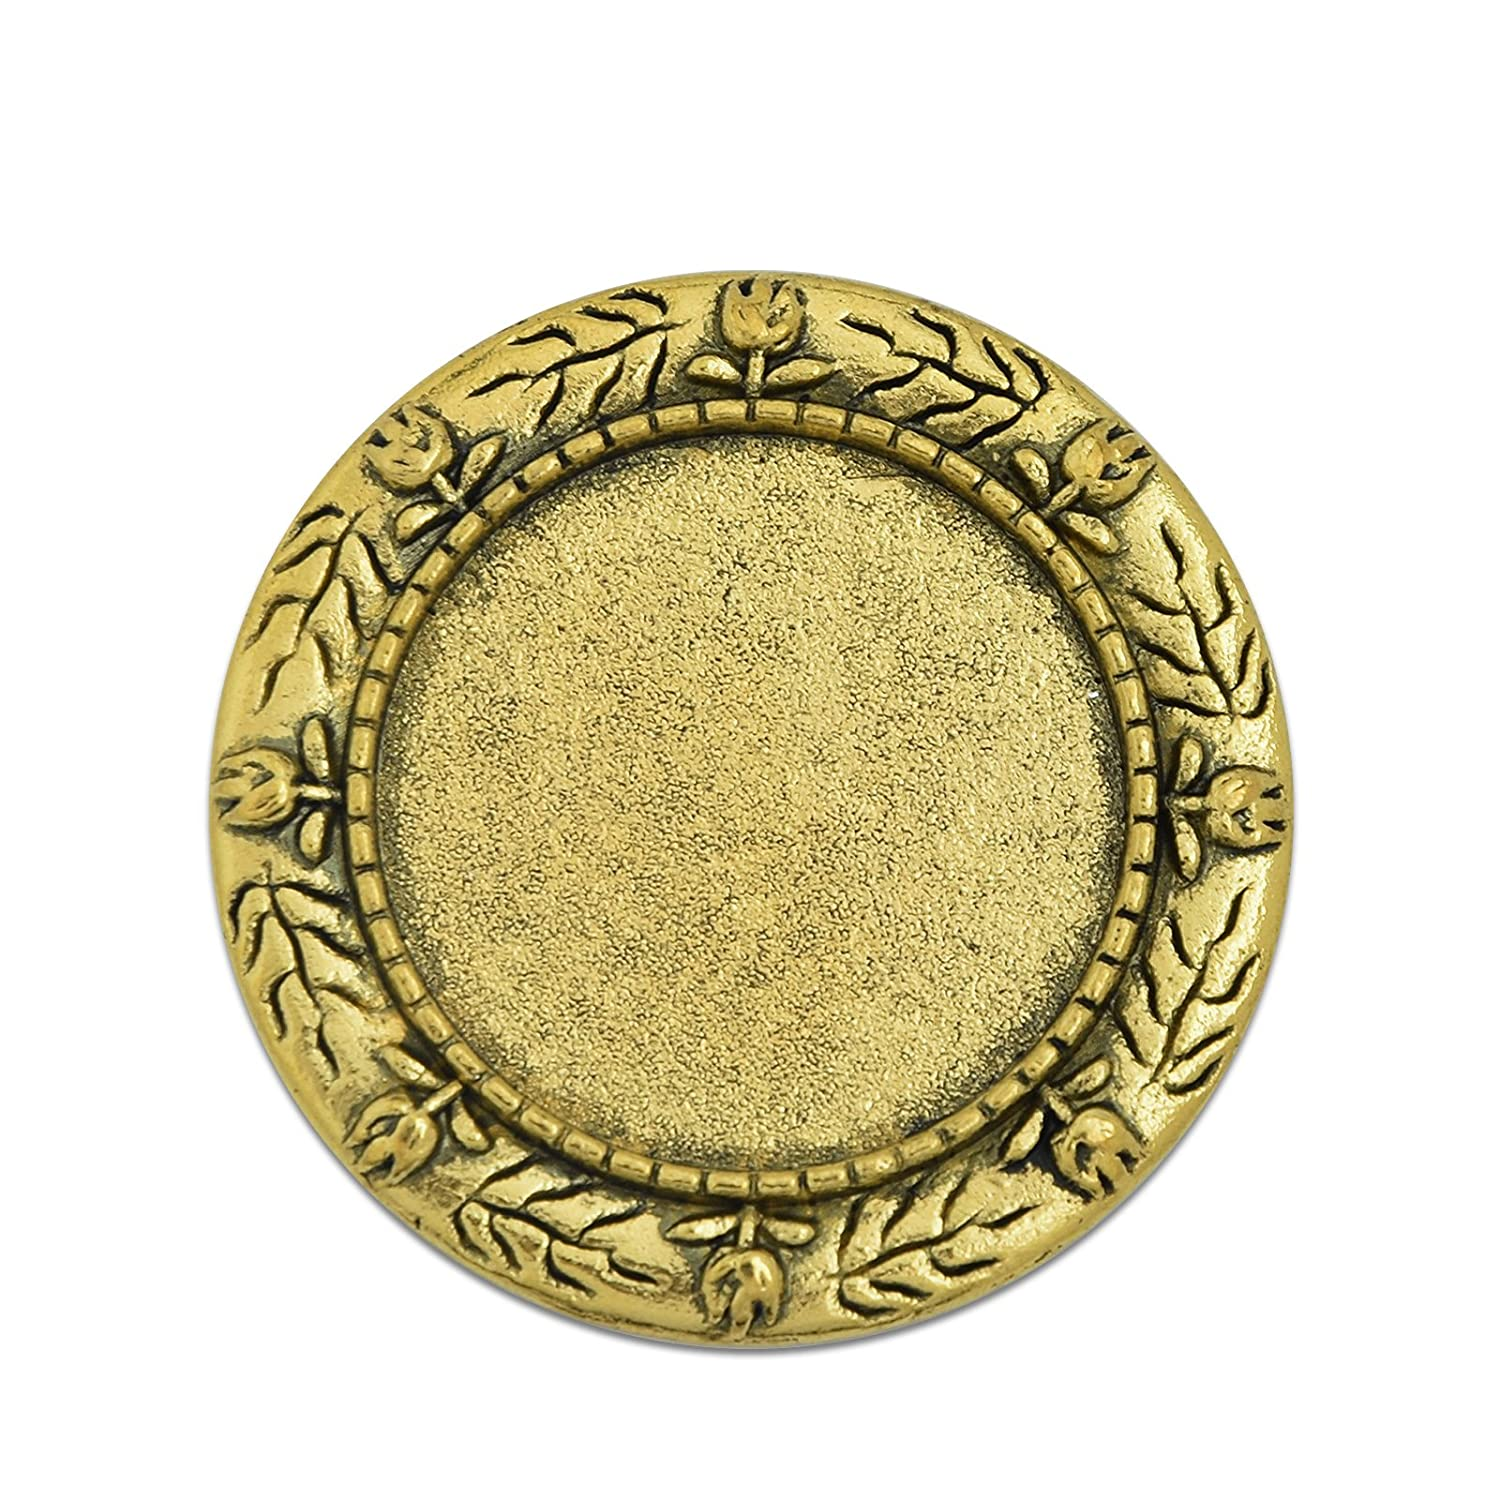 1″ 25mm Round Brooch Blank Base with Safety Pin Back fit 25mm Round Cabochon Pack of 10 (Antique Gold) MAXENVISION